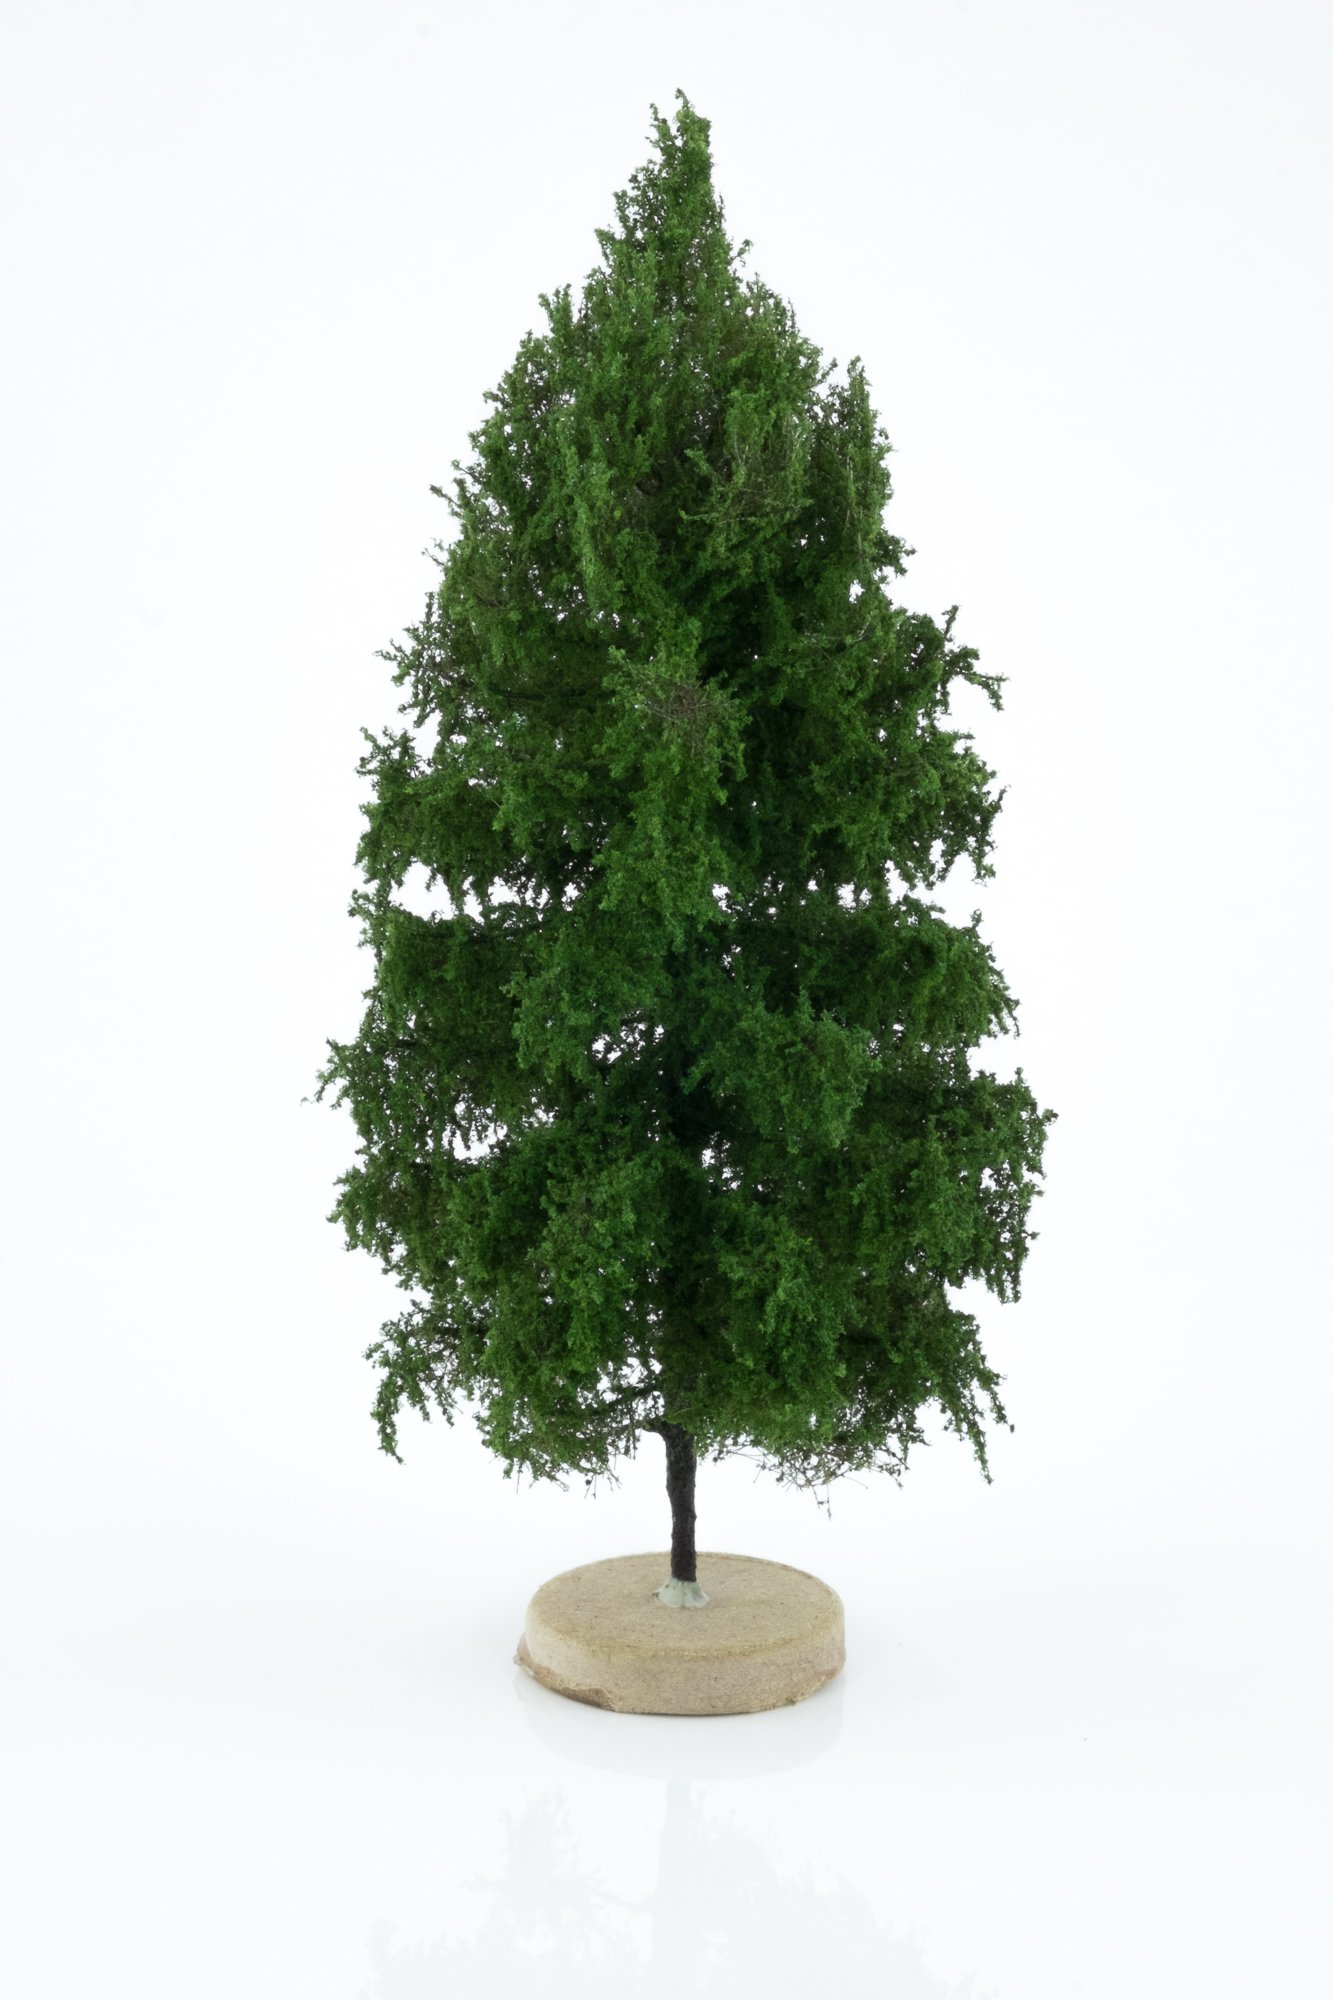 Hand-made, green, larch tree model. Size between 14 and 16 cm. Made from high quality model supplies by Primo Models.